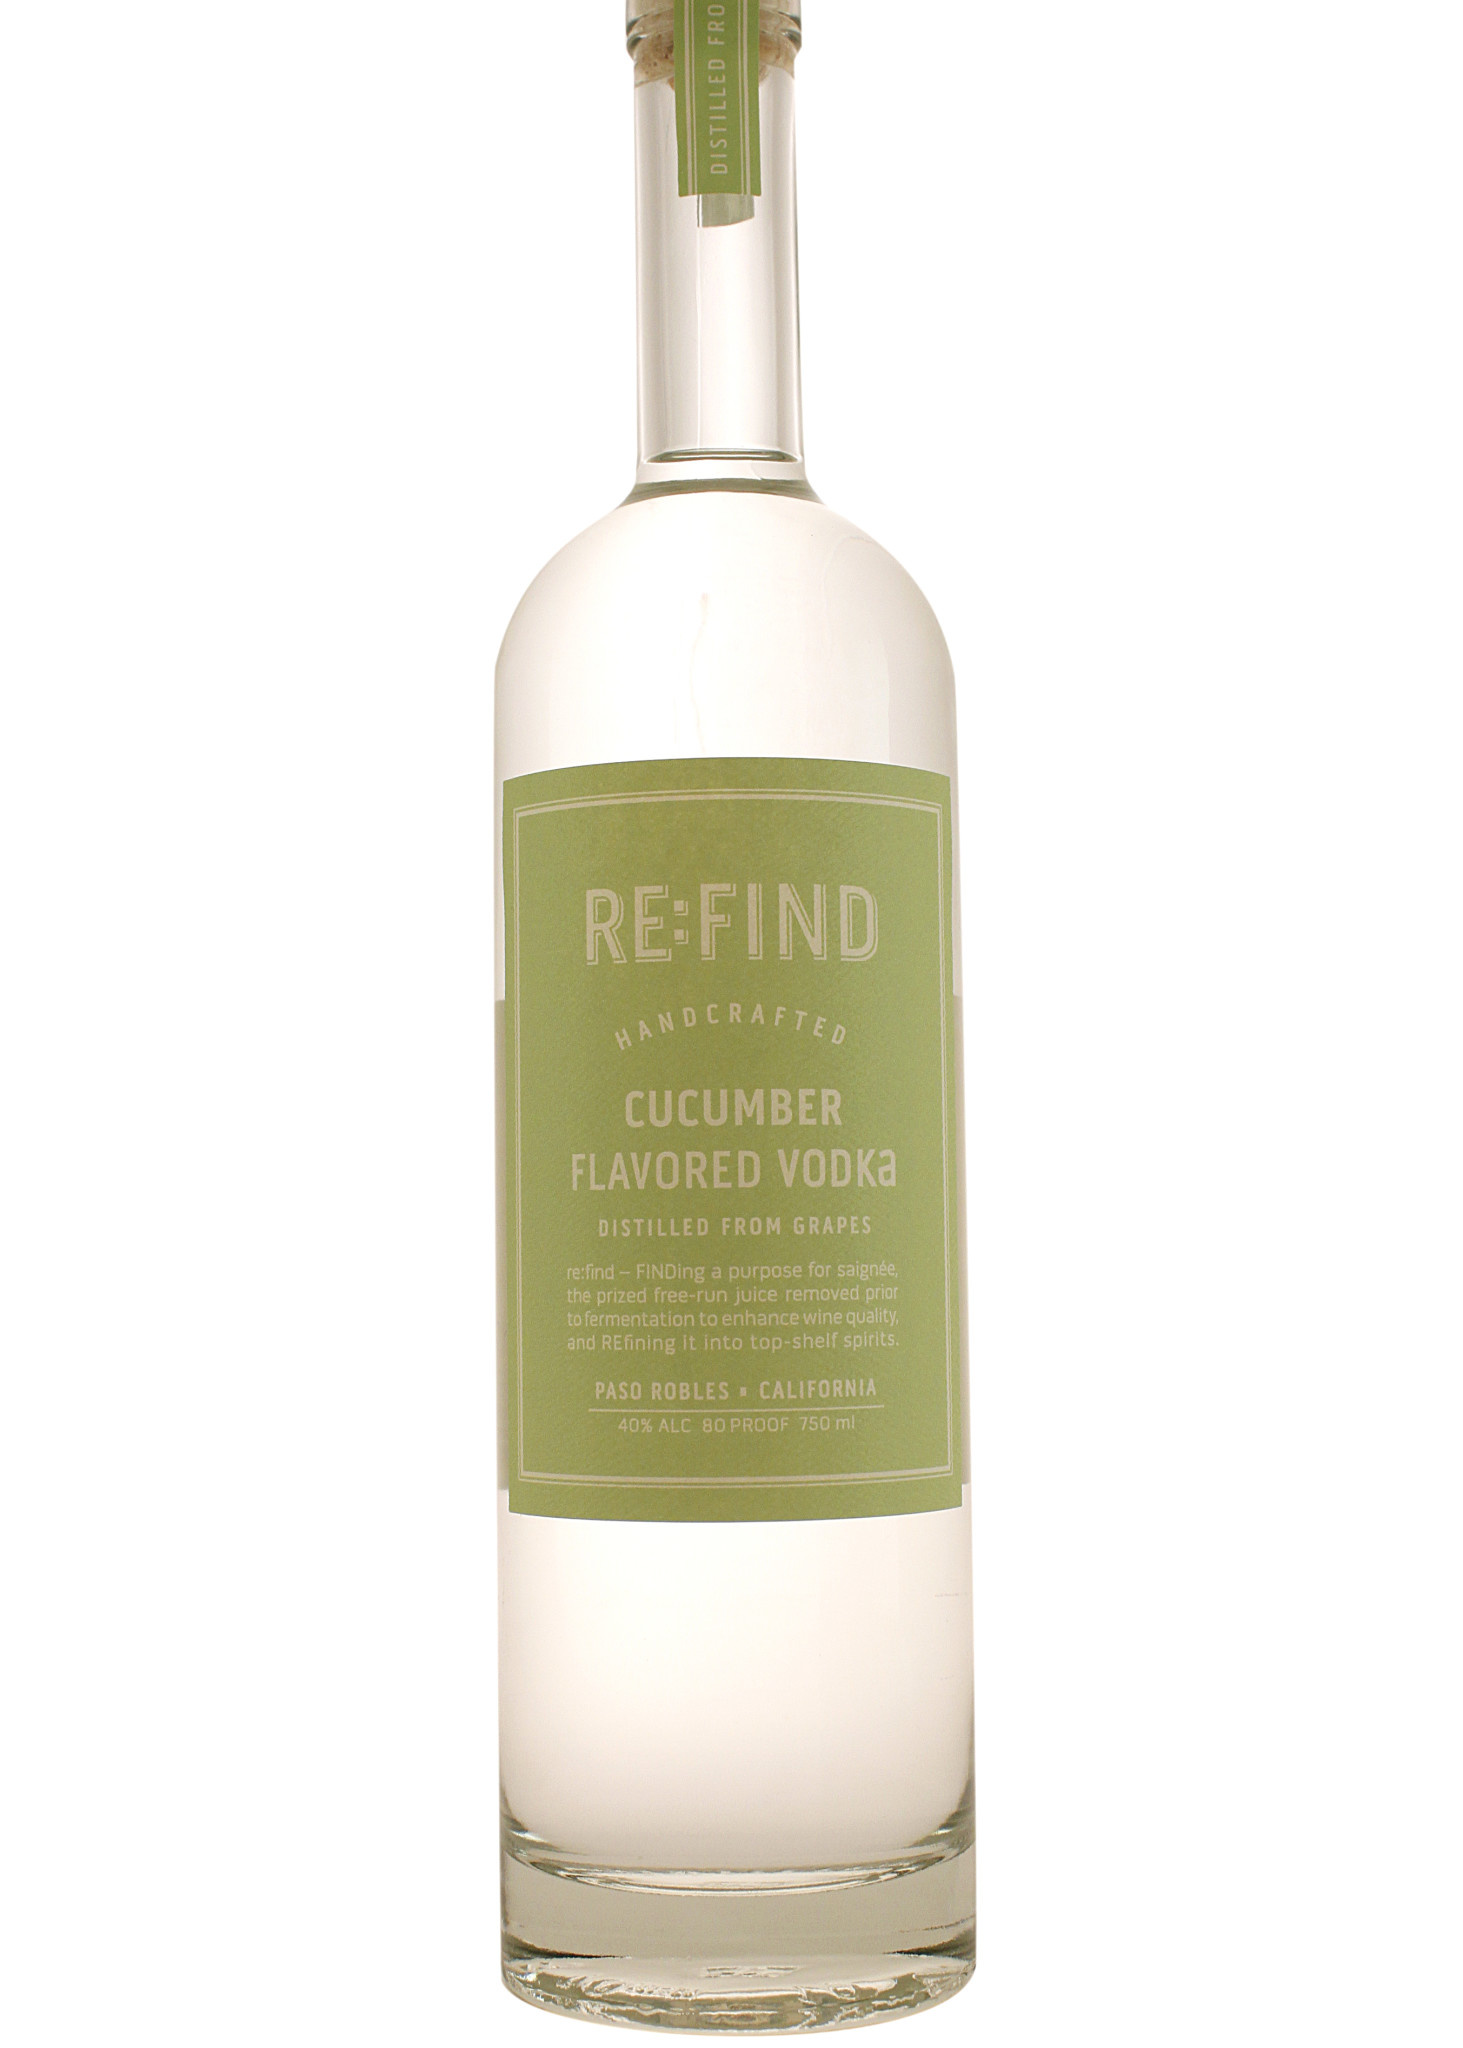 RE:FIND Cucumber Flavored Vodka, Paso Robles